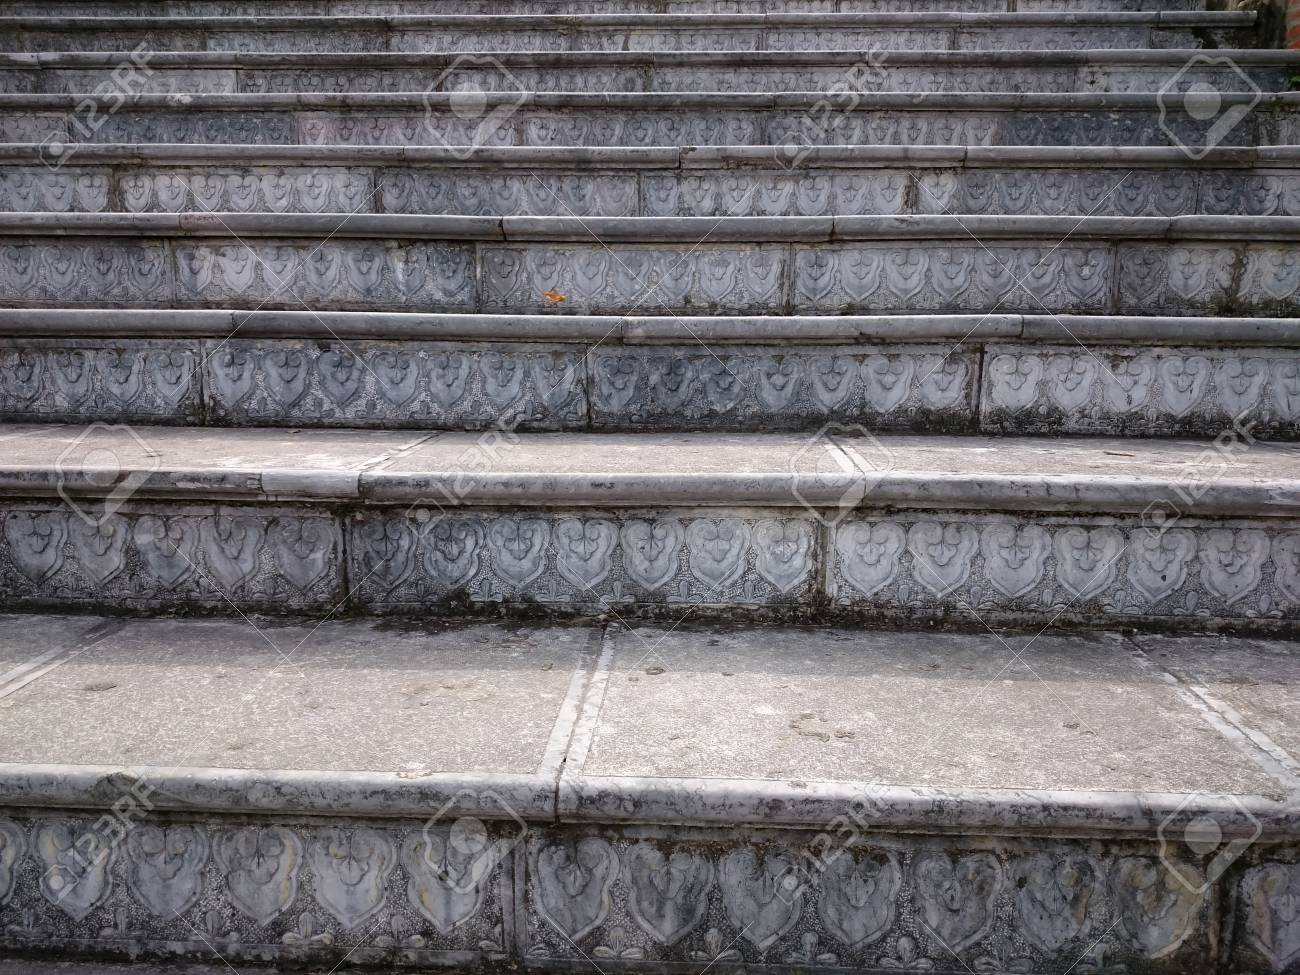 Stock Photo   Stone Stair With Carved Grey Steps. Ascending Steps Outdoors  In The Vietnamese Style Pattern. Brown Staircase Rising Up To The Temple  With ...